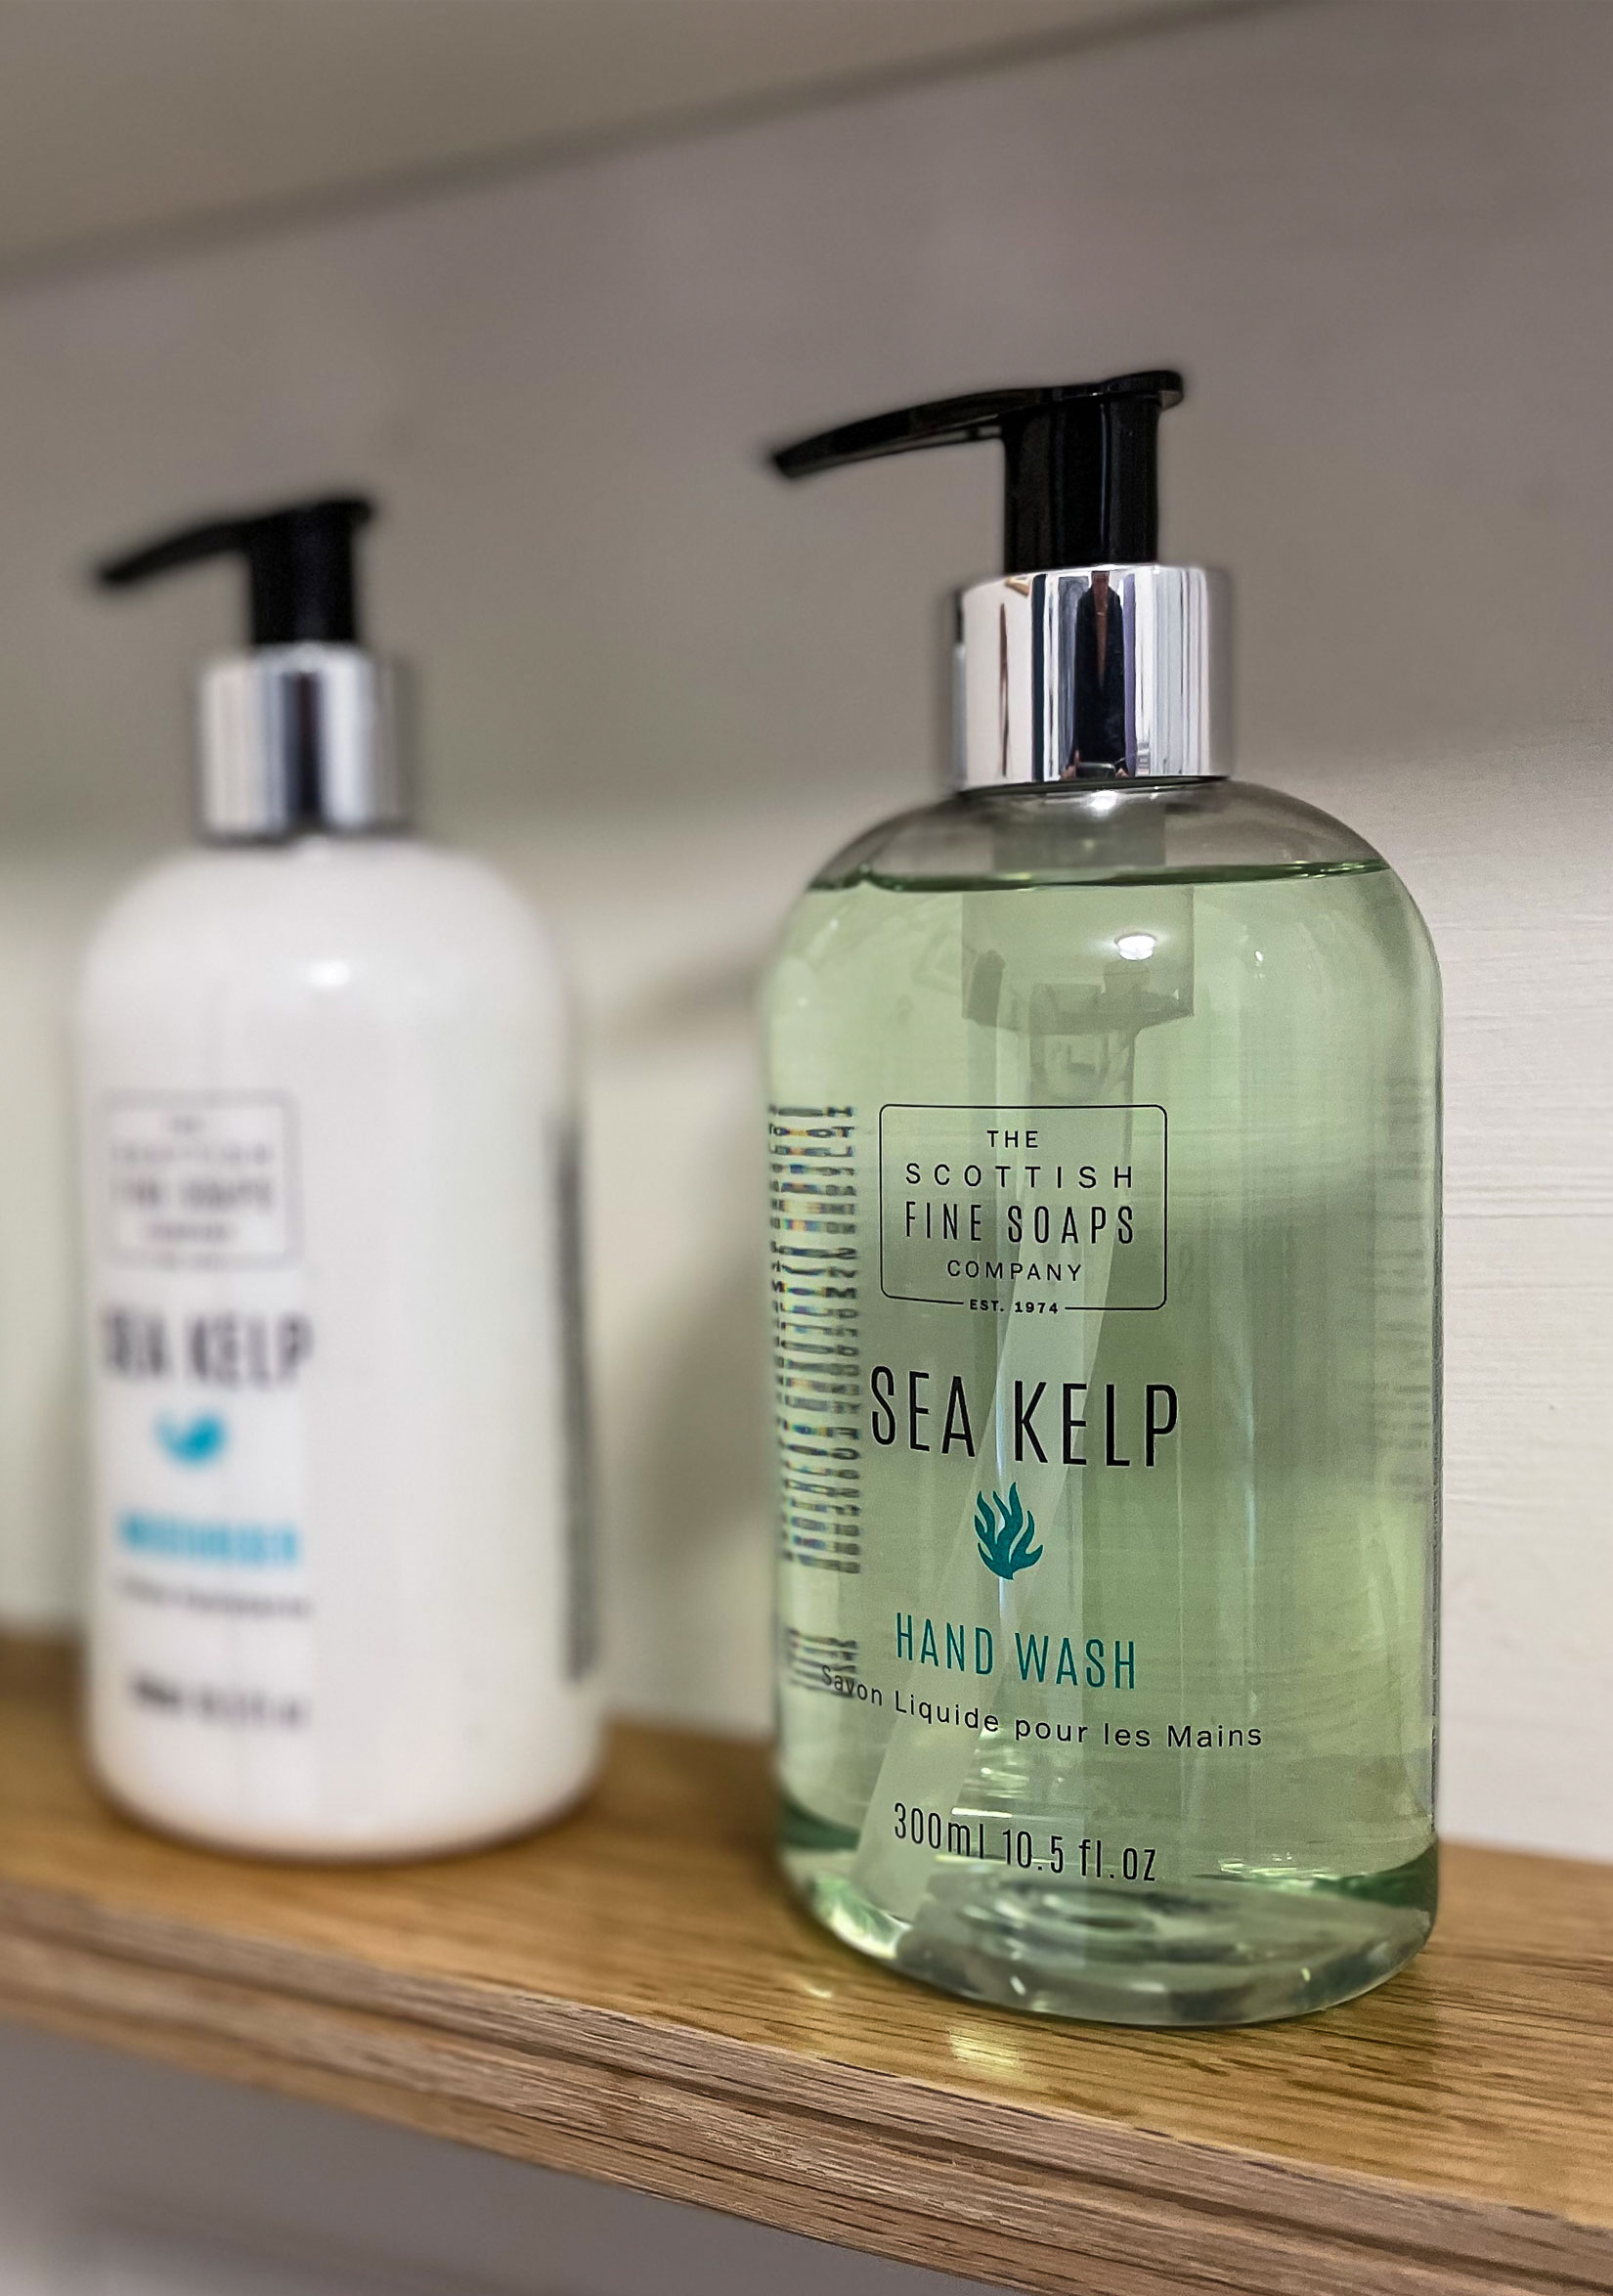 Bathroom Products at Coquet Meadows